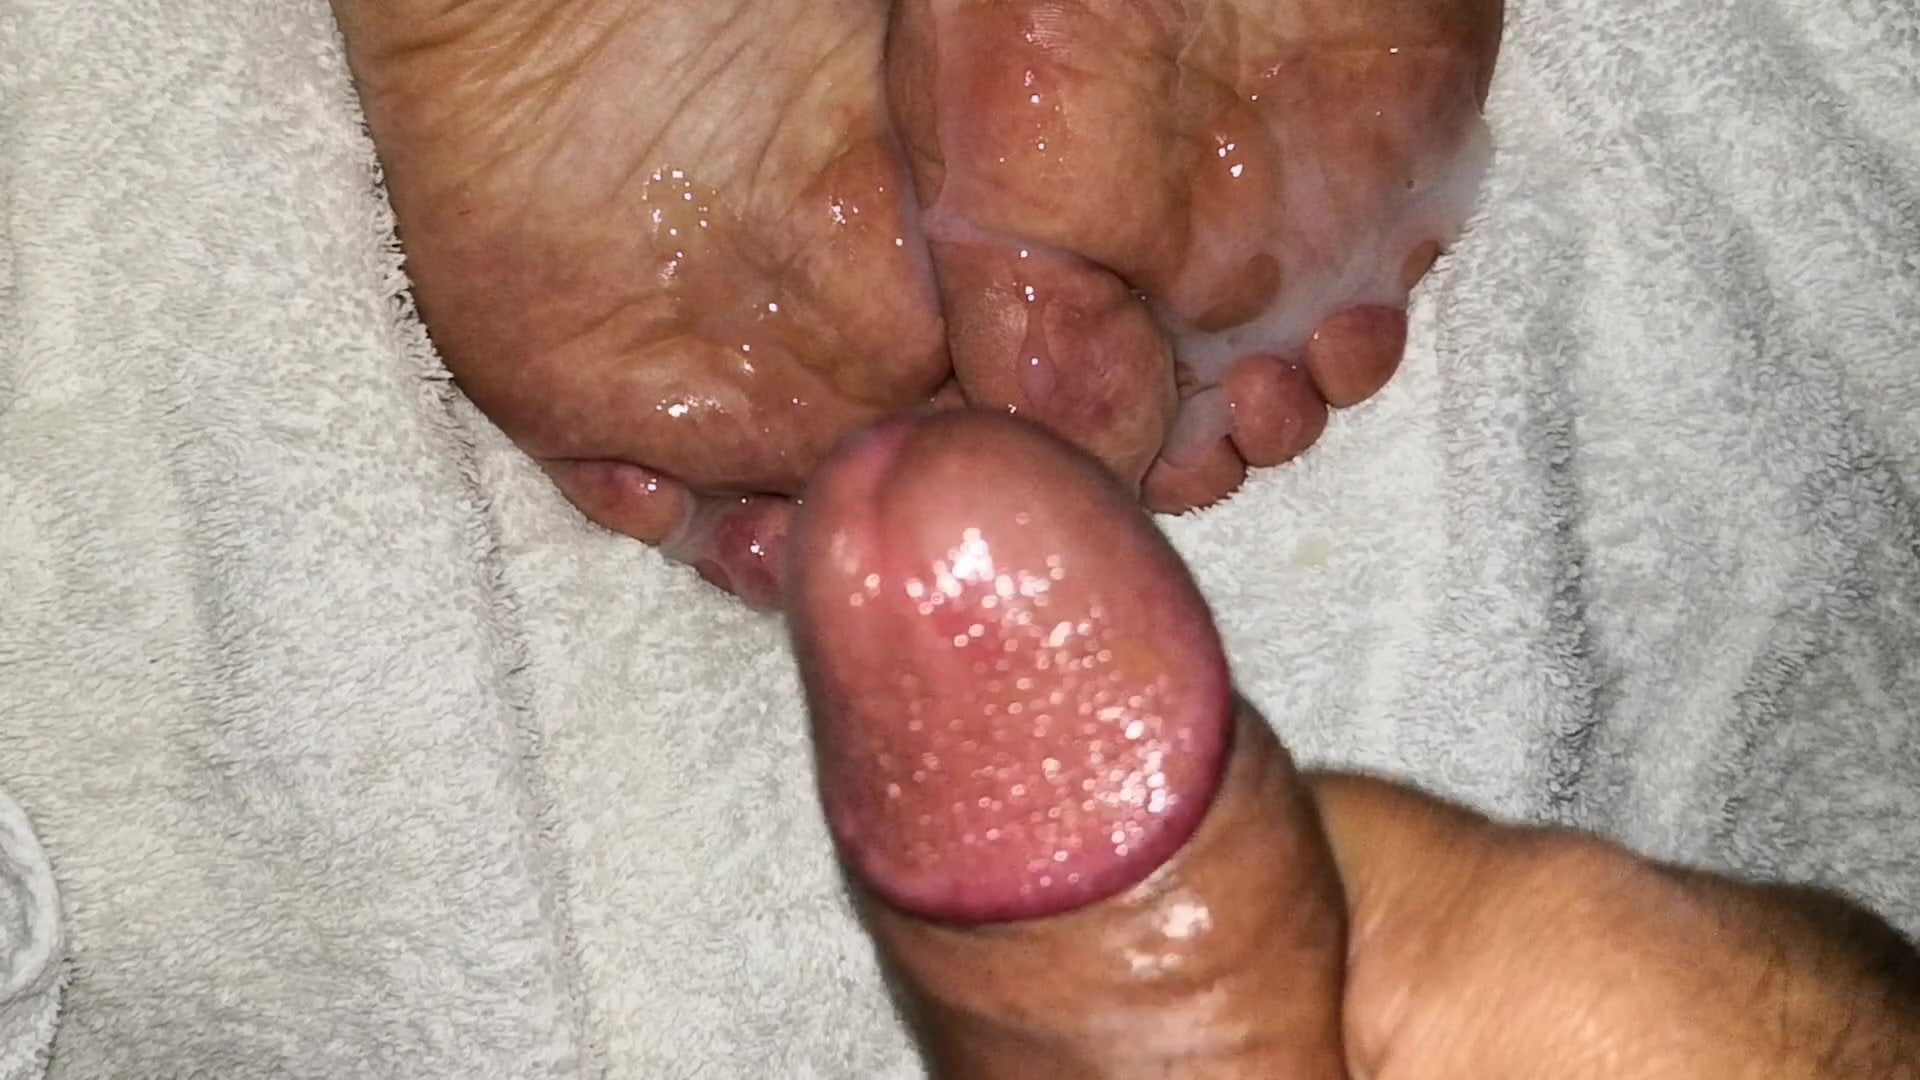 My wife anal sex and cum on feet